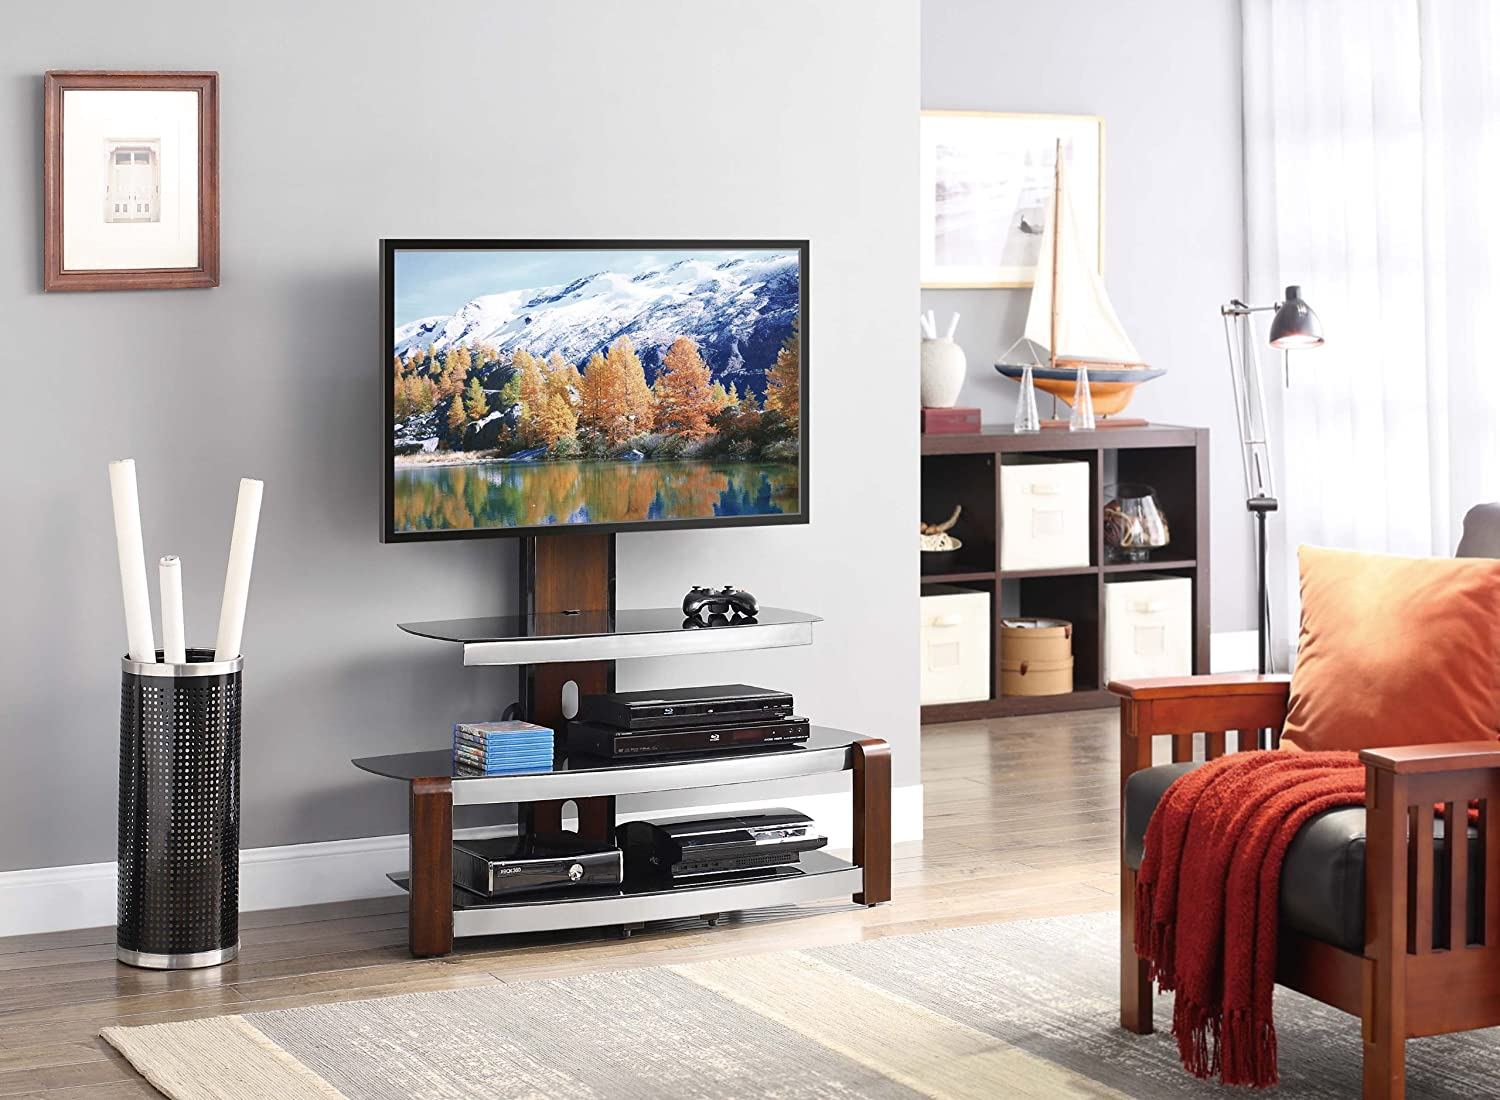 The 5 Best TV Stands In 2021: Reviews & Buying Guide 2